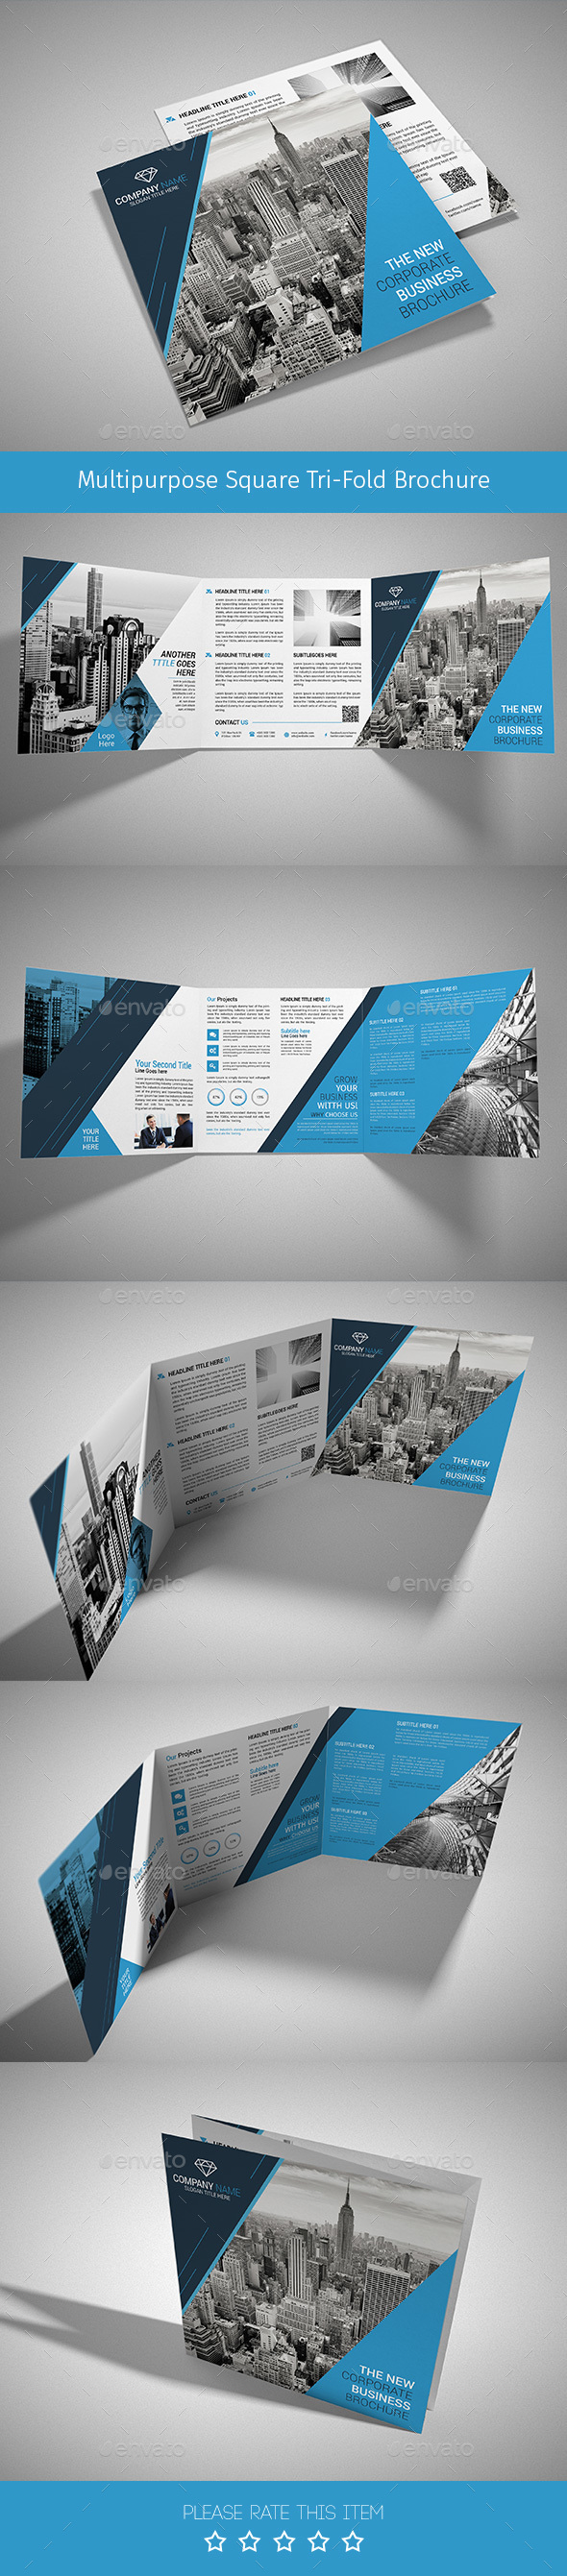 Corporate Tri-fold Square Brochure 06 - Corporate Brochures